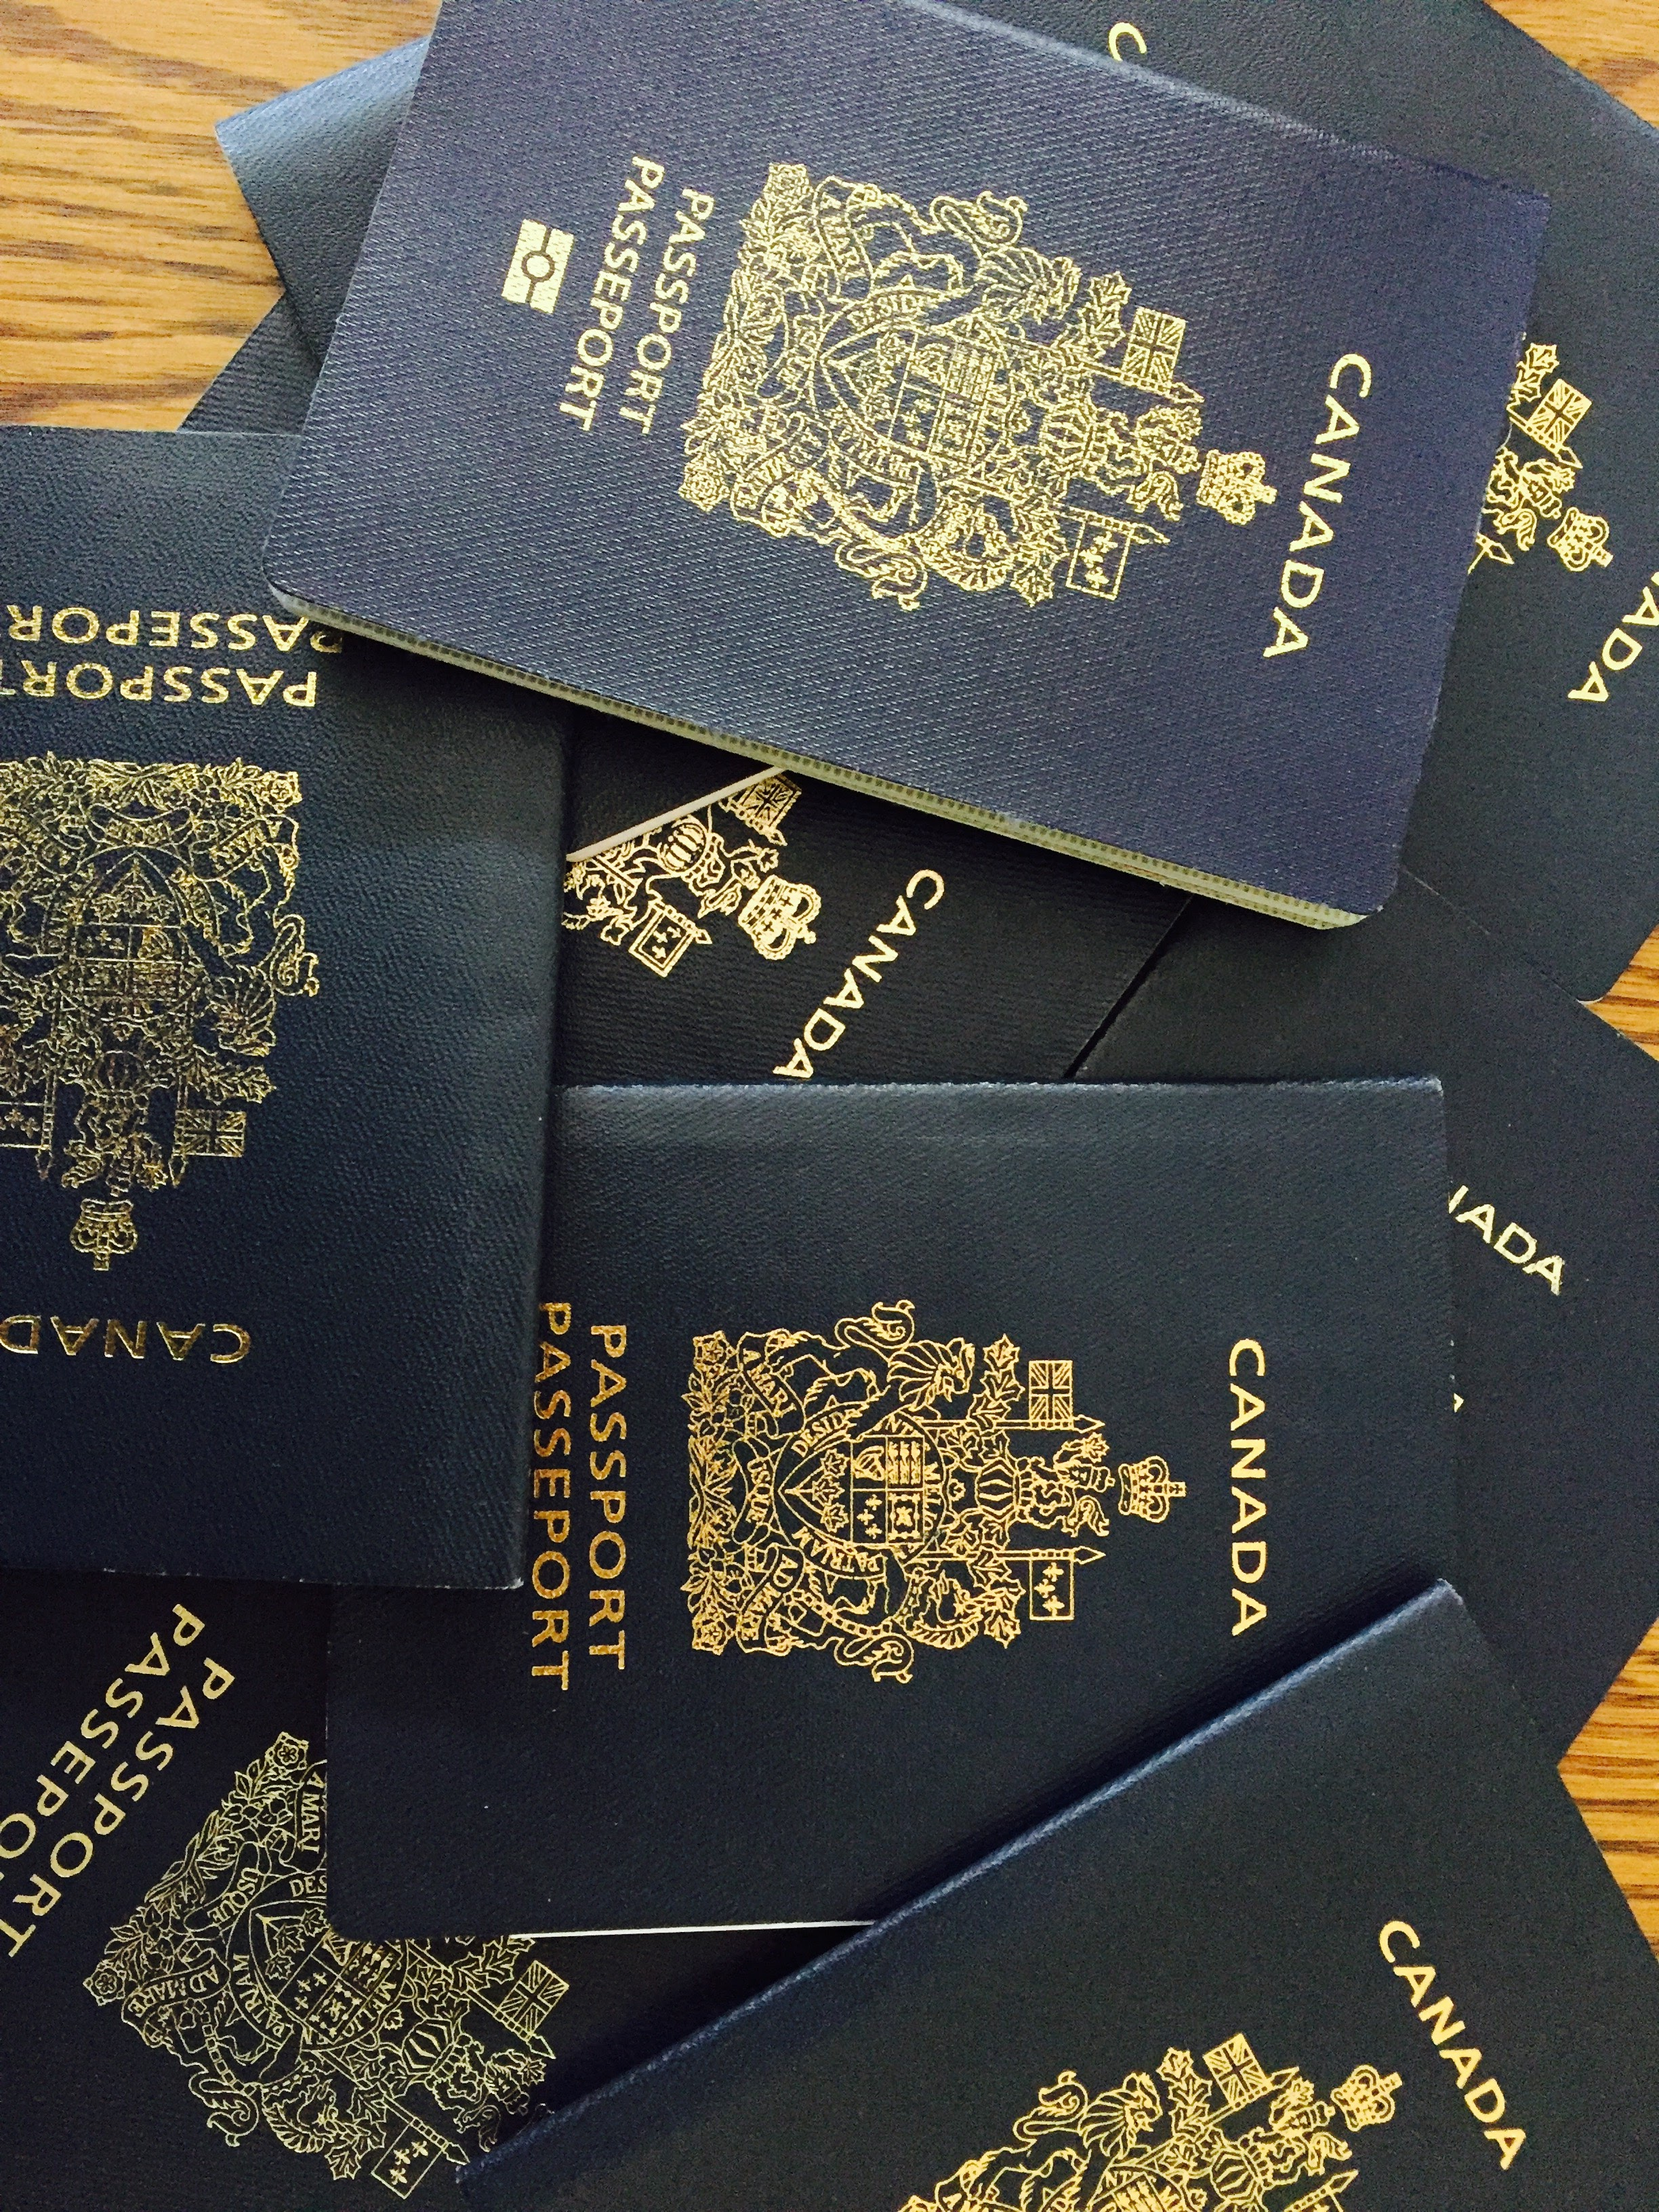 cic canada permanent resident travel document